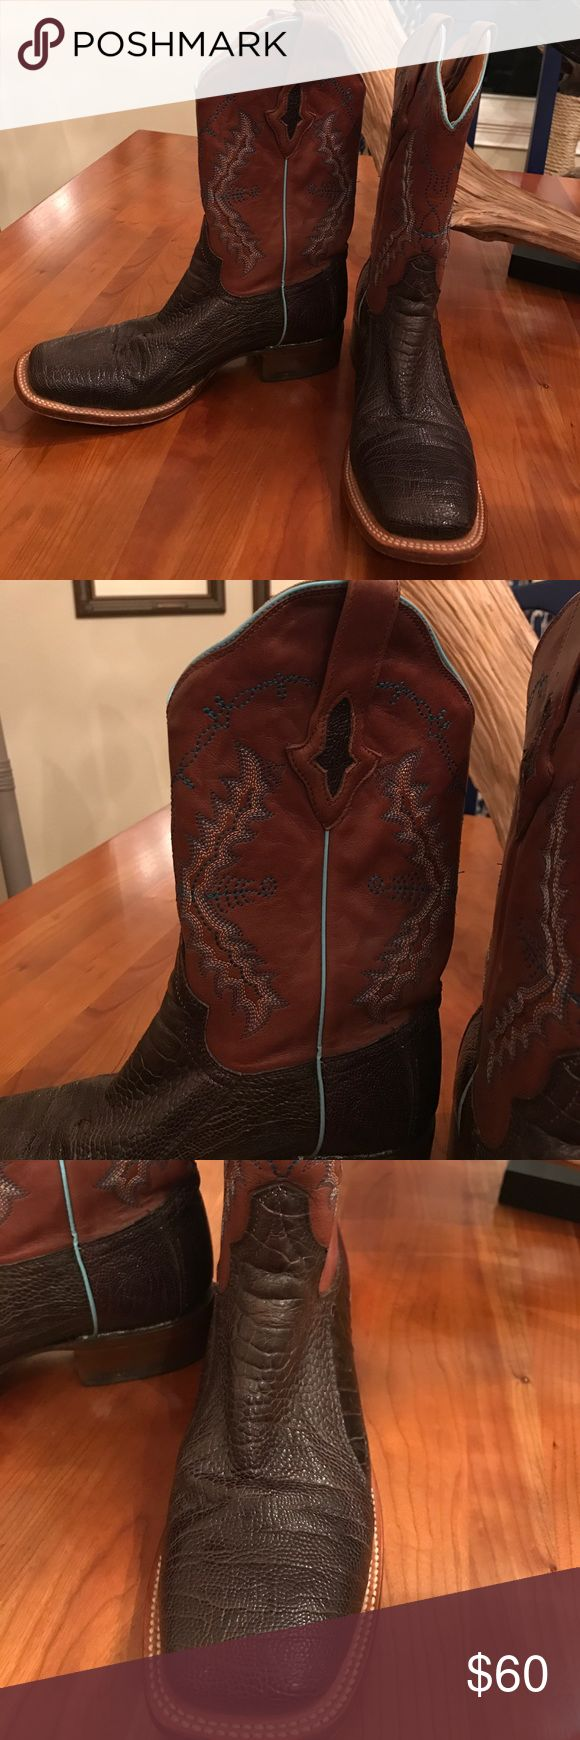 Resistol Women's 8.5 Cowboy Boots Brown/Aqua Gorgeous Resistol Women's square toe cowboy boots.  Size 8.5.  Brown leather shank with Aqua stitching and trim.  I think foot is made from some type of snake skin.  See pic for texture.  Great condition, worn a few times. Resistol Shoes Heeled Boots